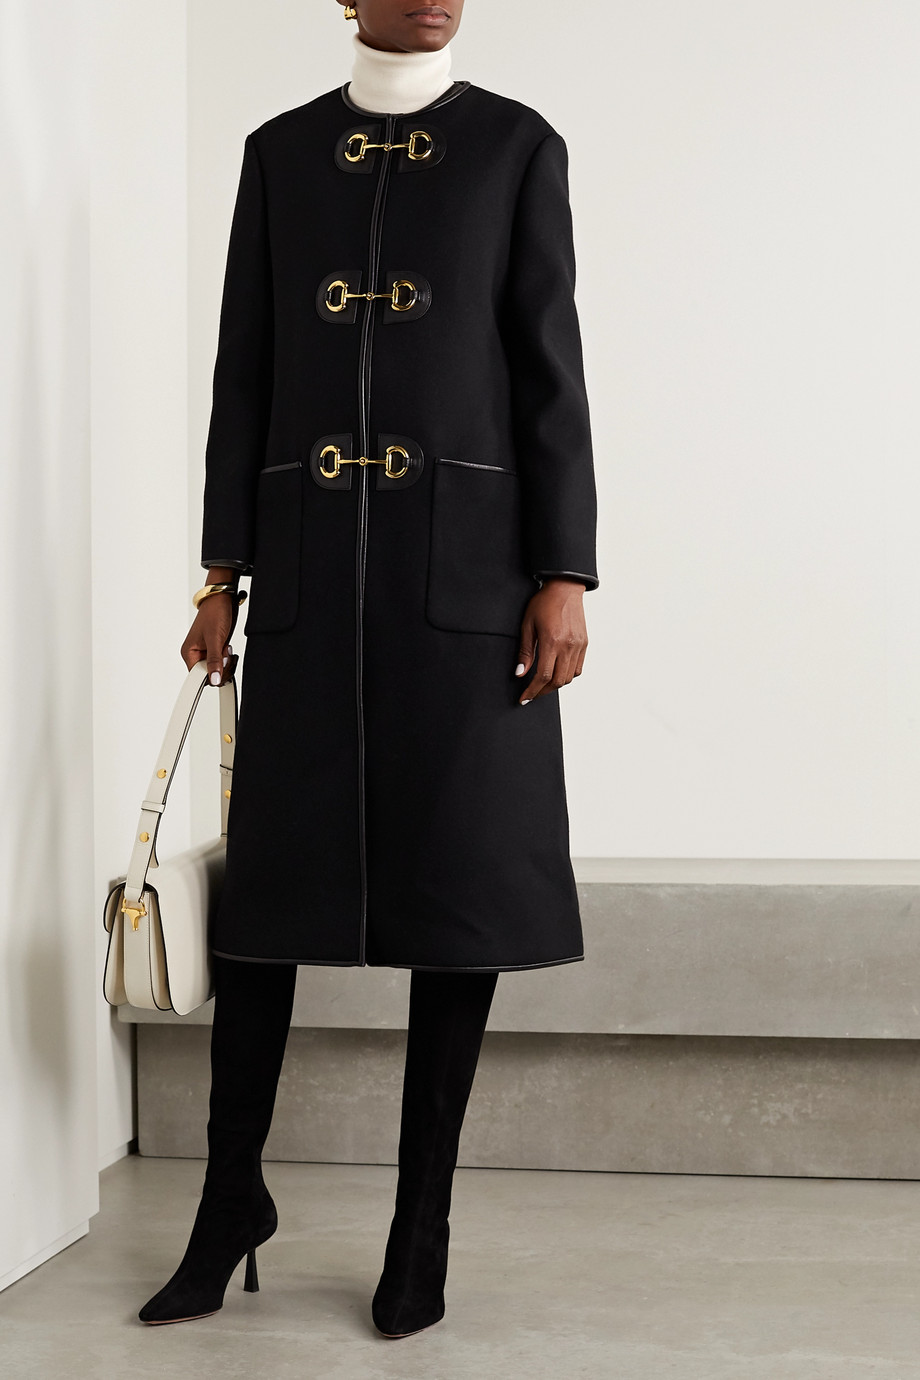 Gucci Leather-trimmed wool-blend coat